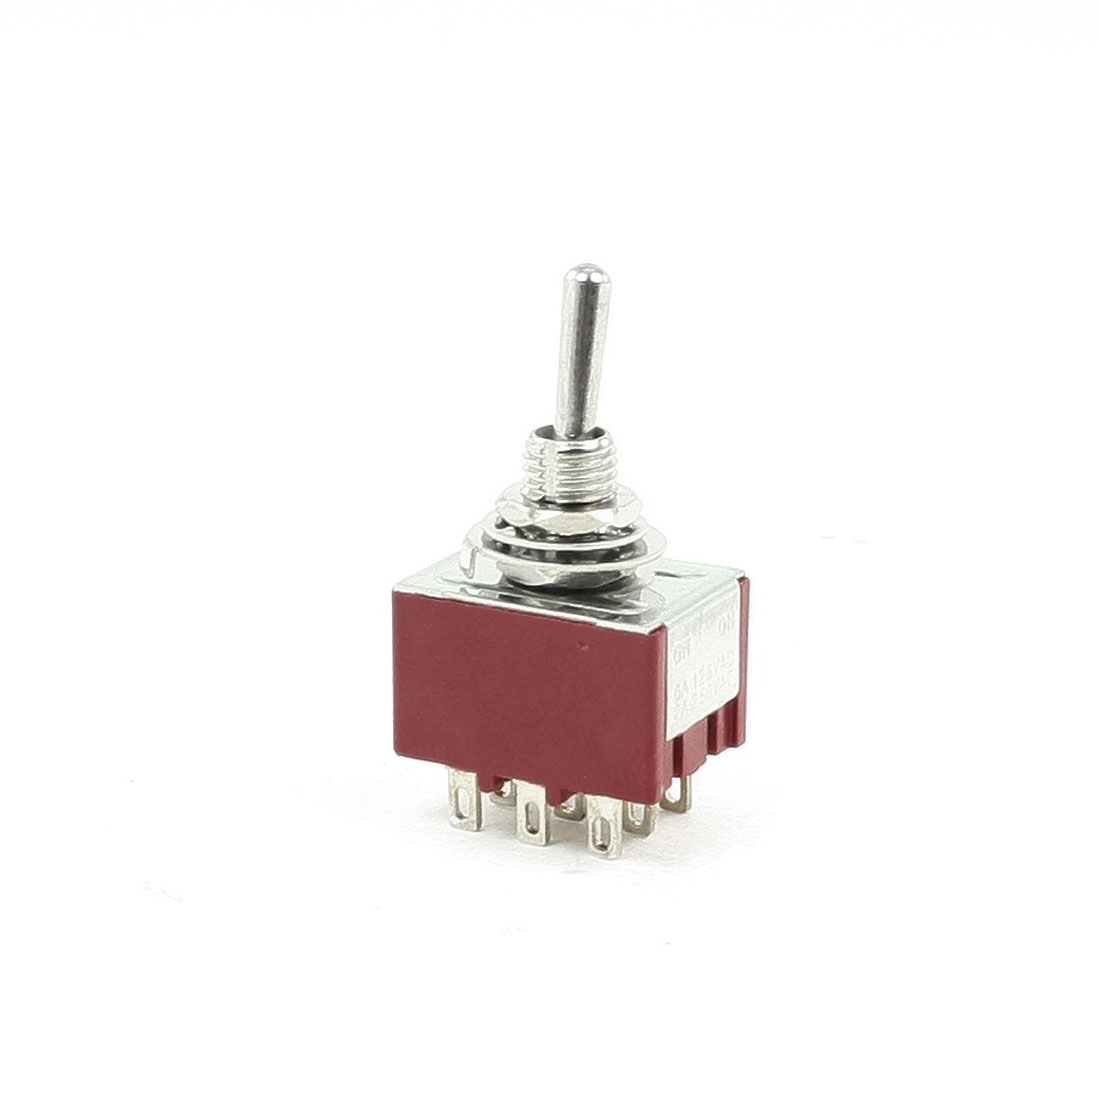 3PDT ON/ON 2 Position Panel Mounted Toggle Switch 6A/125VAC 2A/250VAC